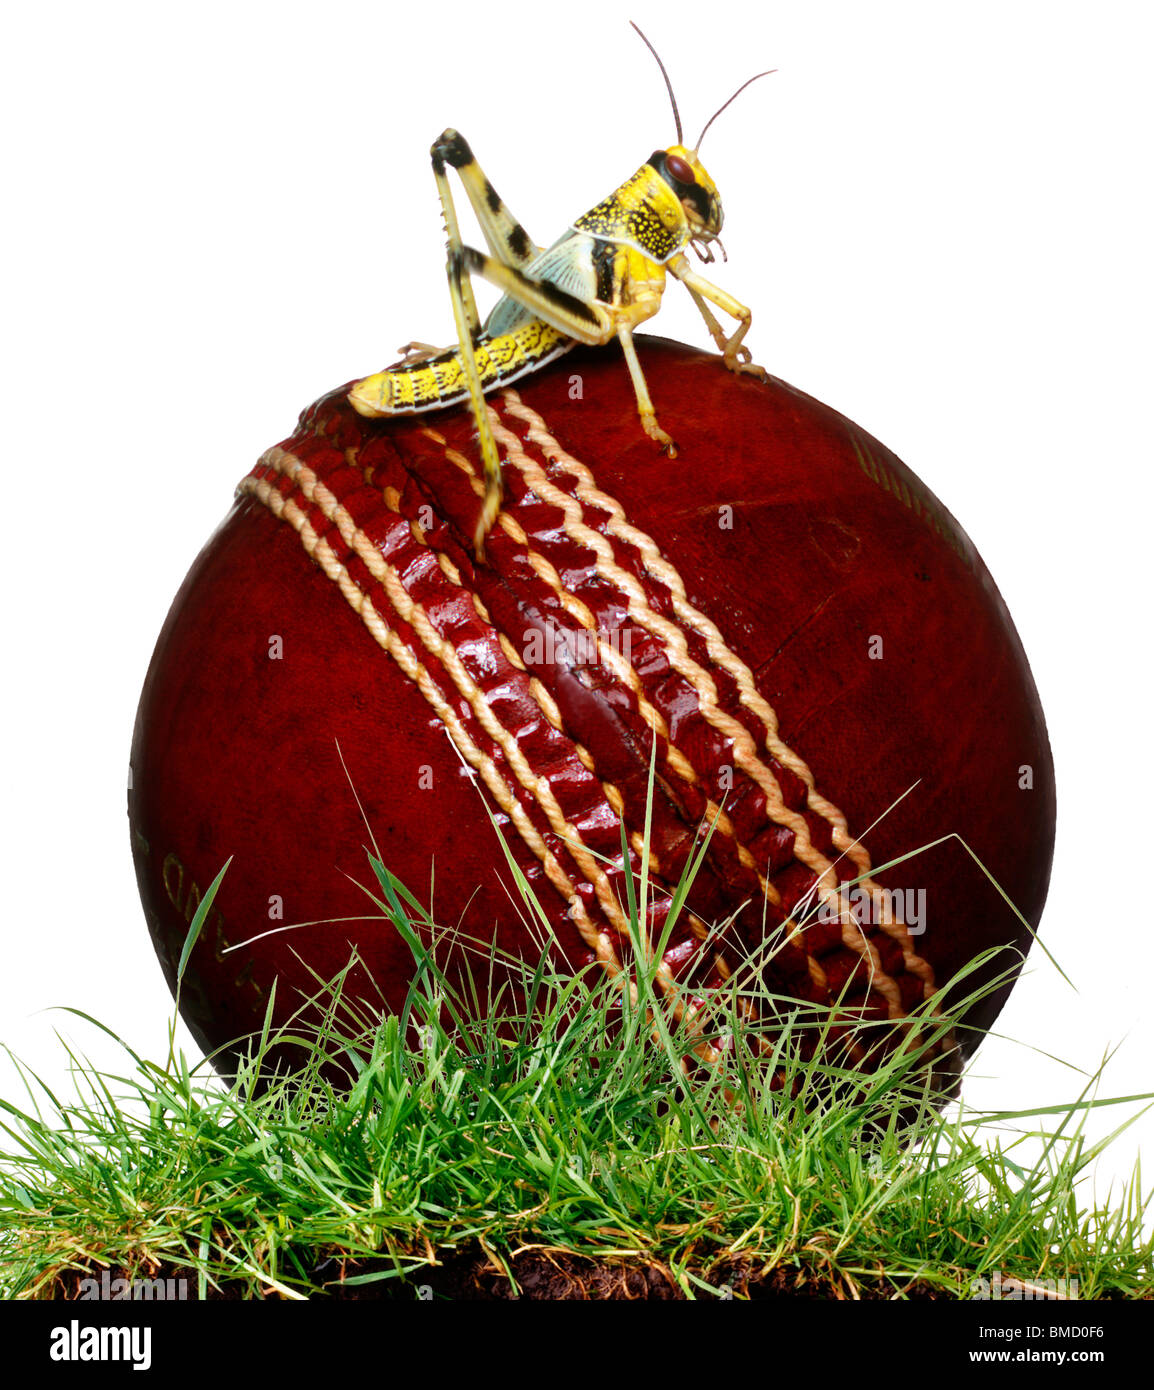 Balle de cricket Photo Stock